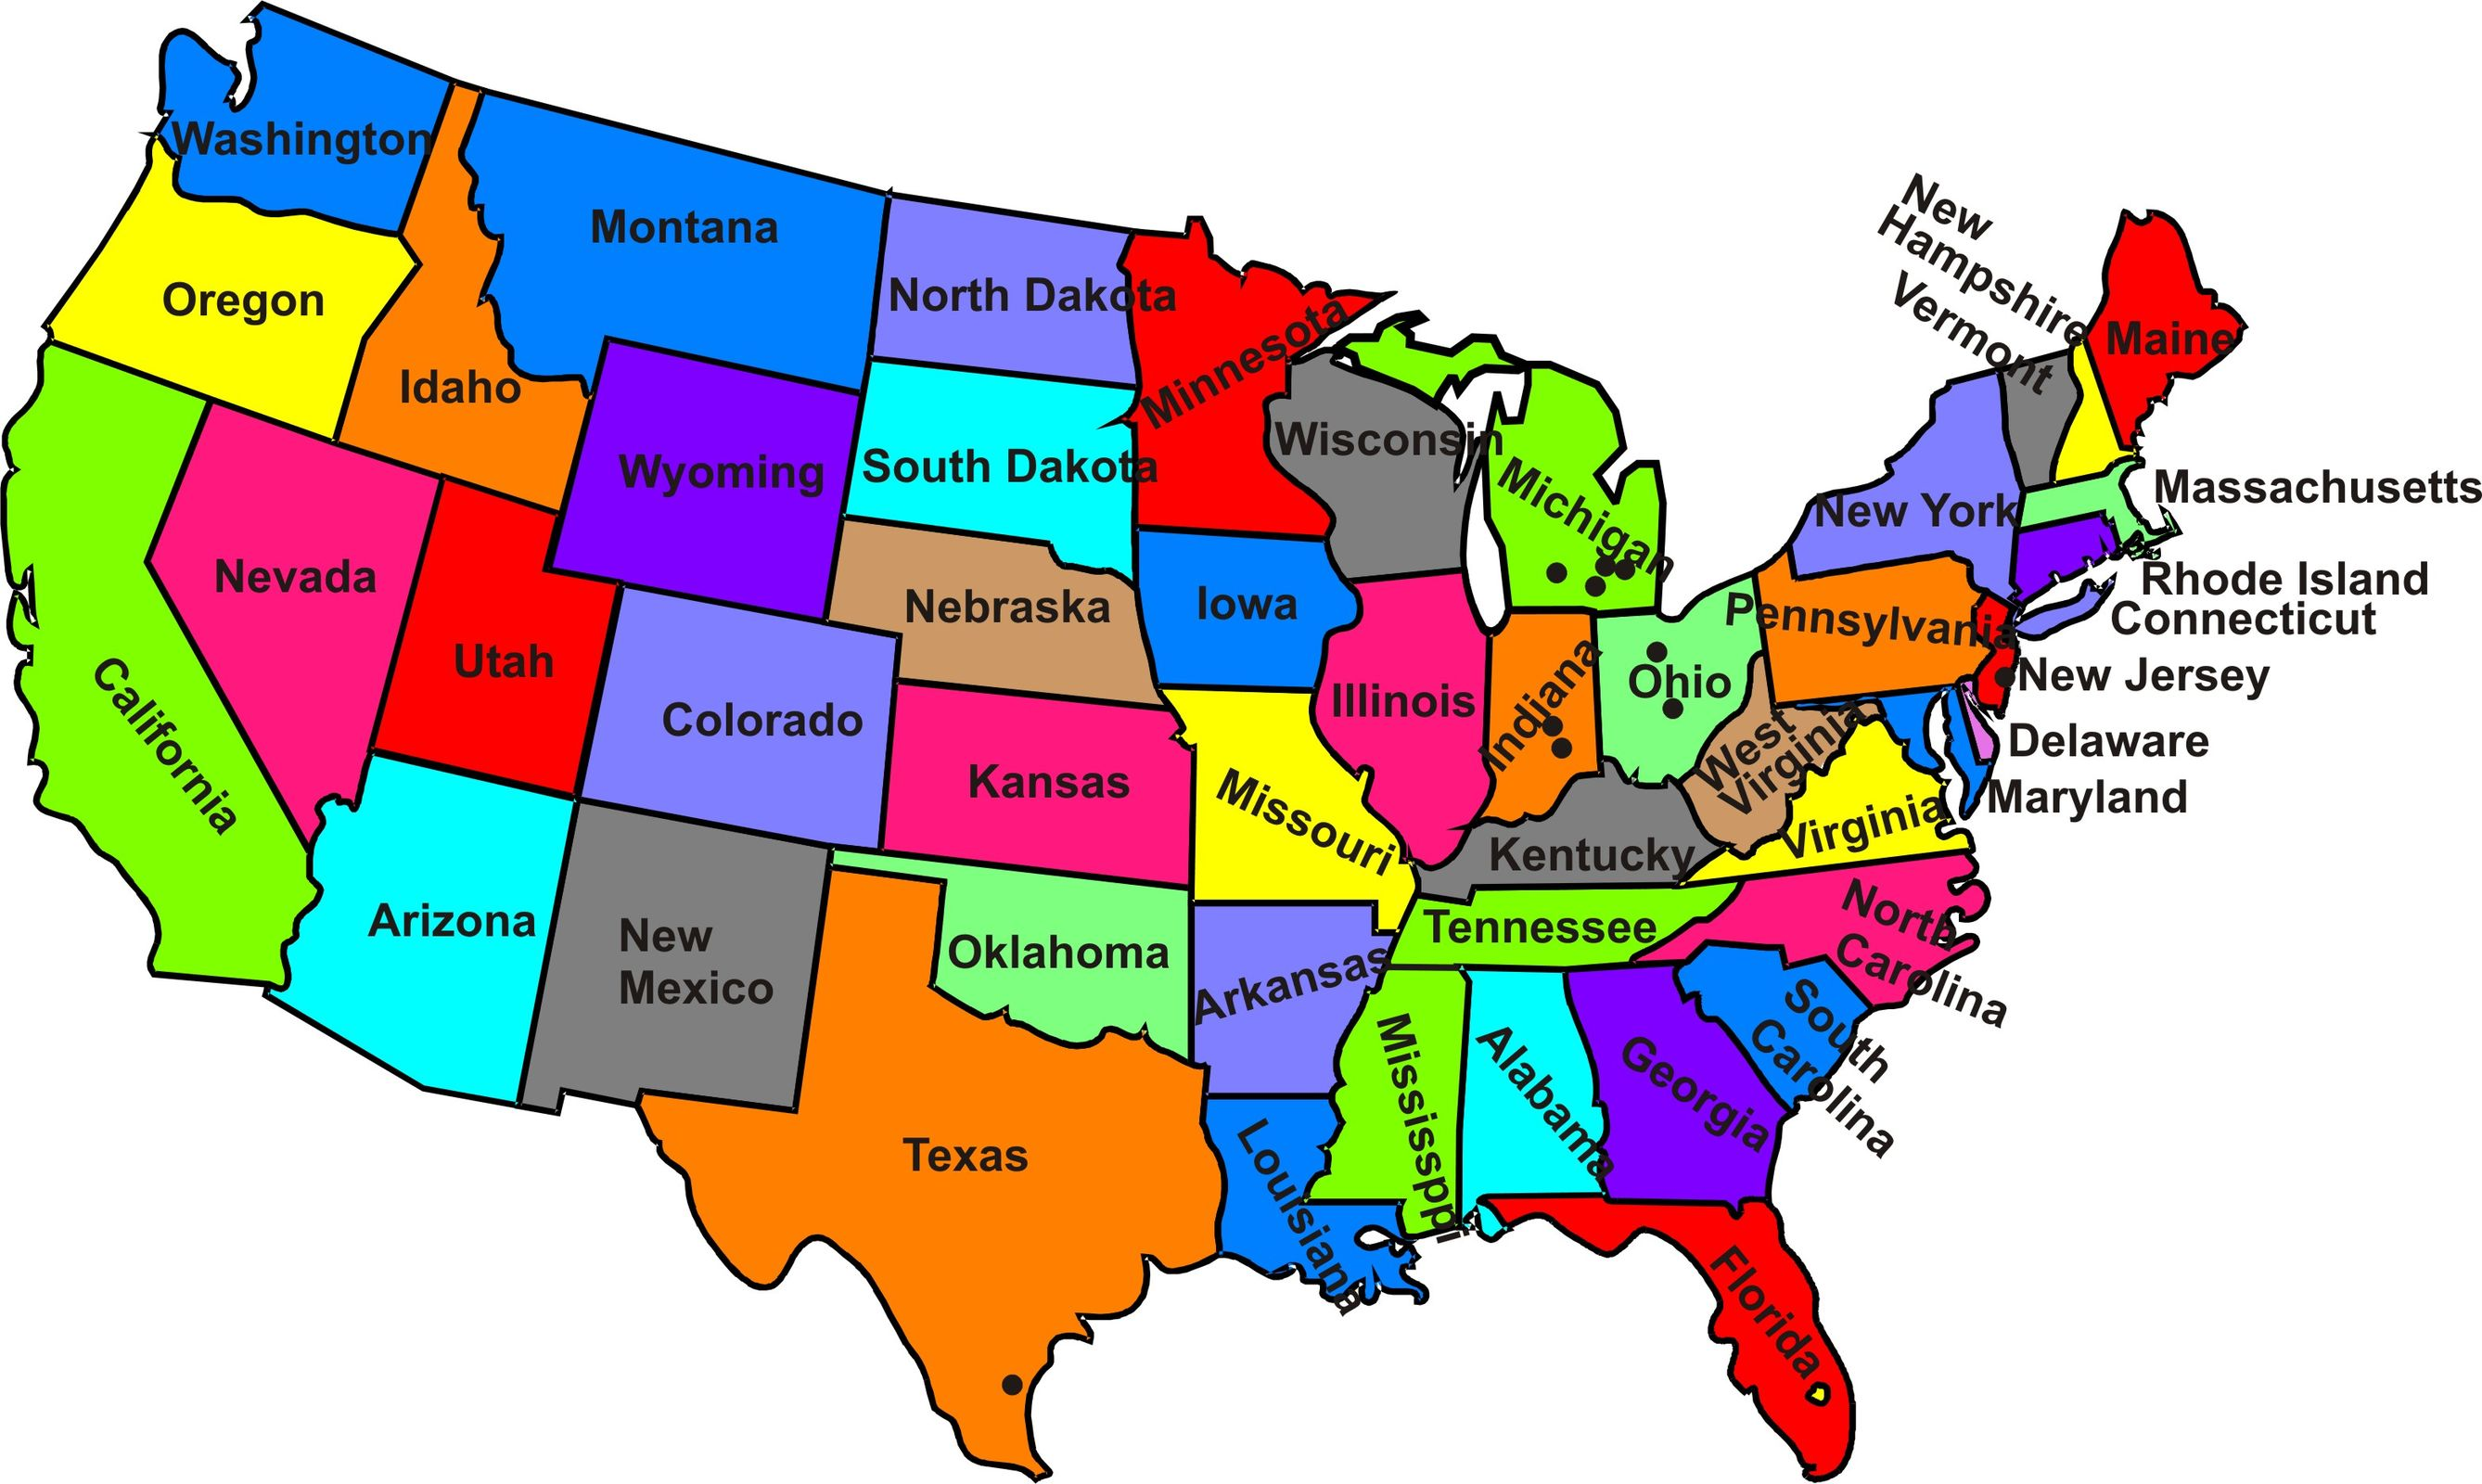 USA Outline Map About The  American States And Capitals This - Midwest usa blank map